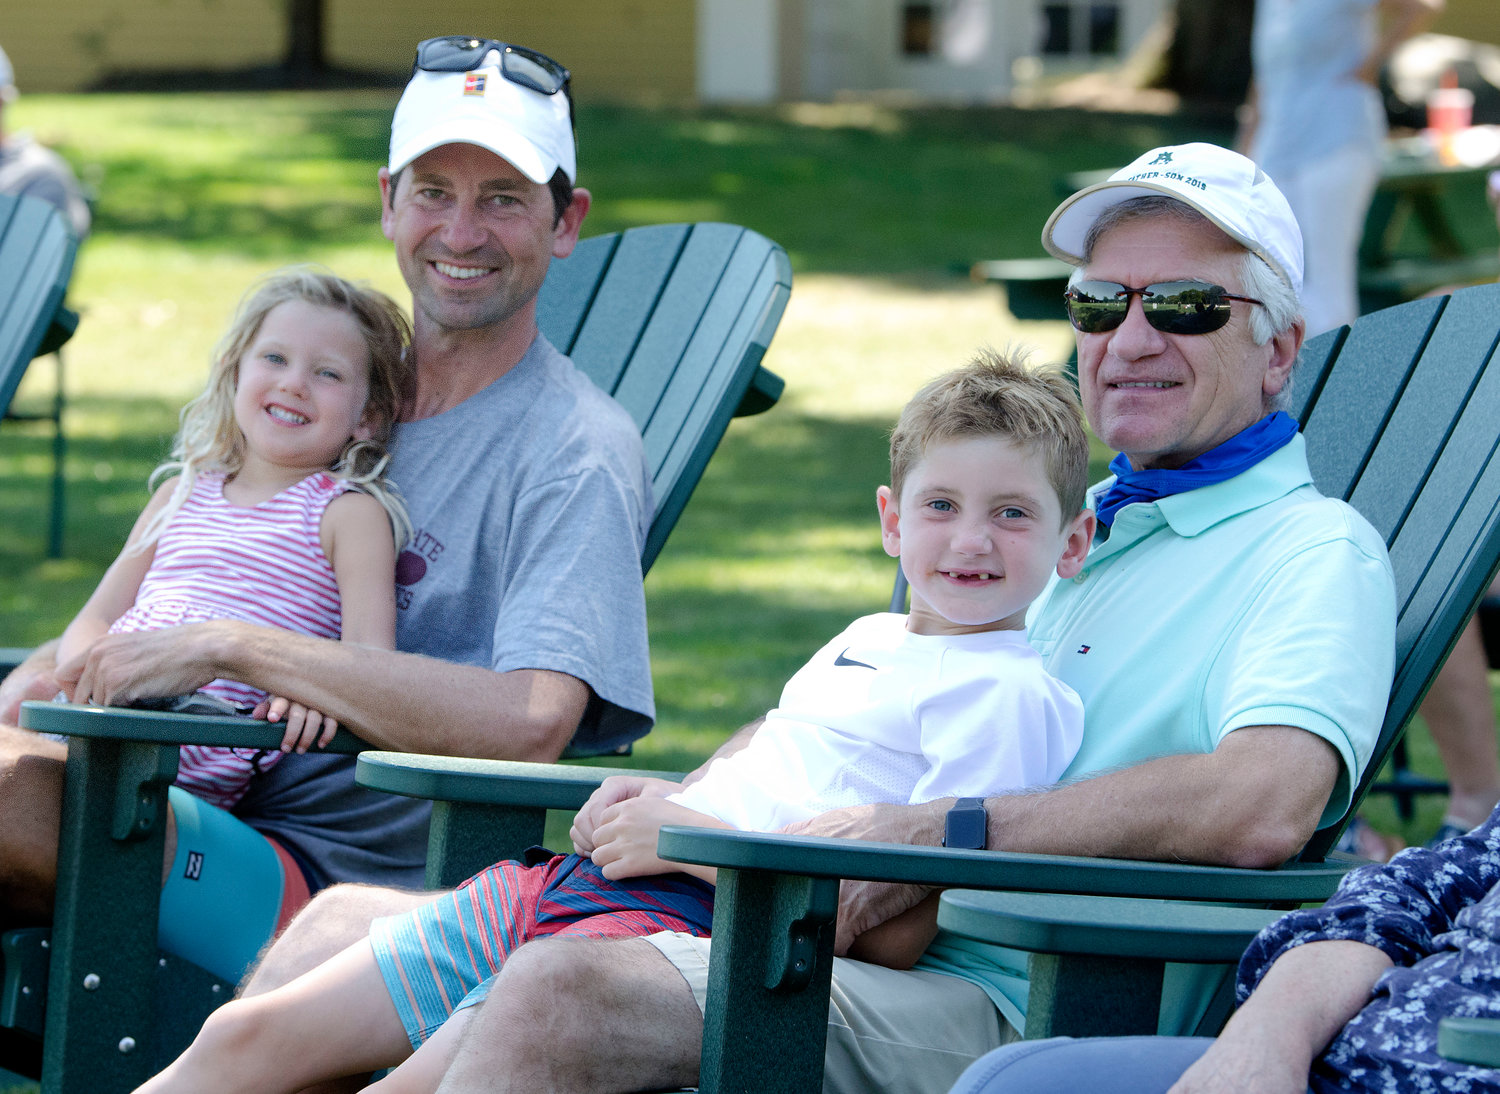 Eventual doubles draw winner Evan Ambrose, with daughter Julia on his lap, along with his dad, Paul Ambrose and Evan's Ryan watch the singles action.